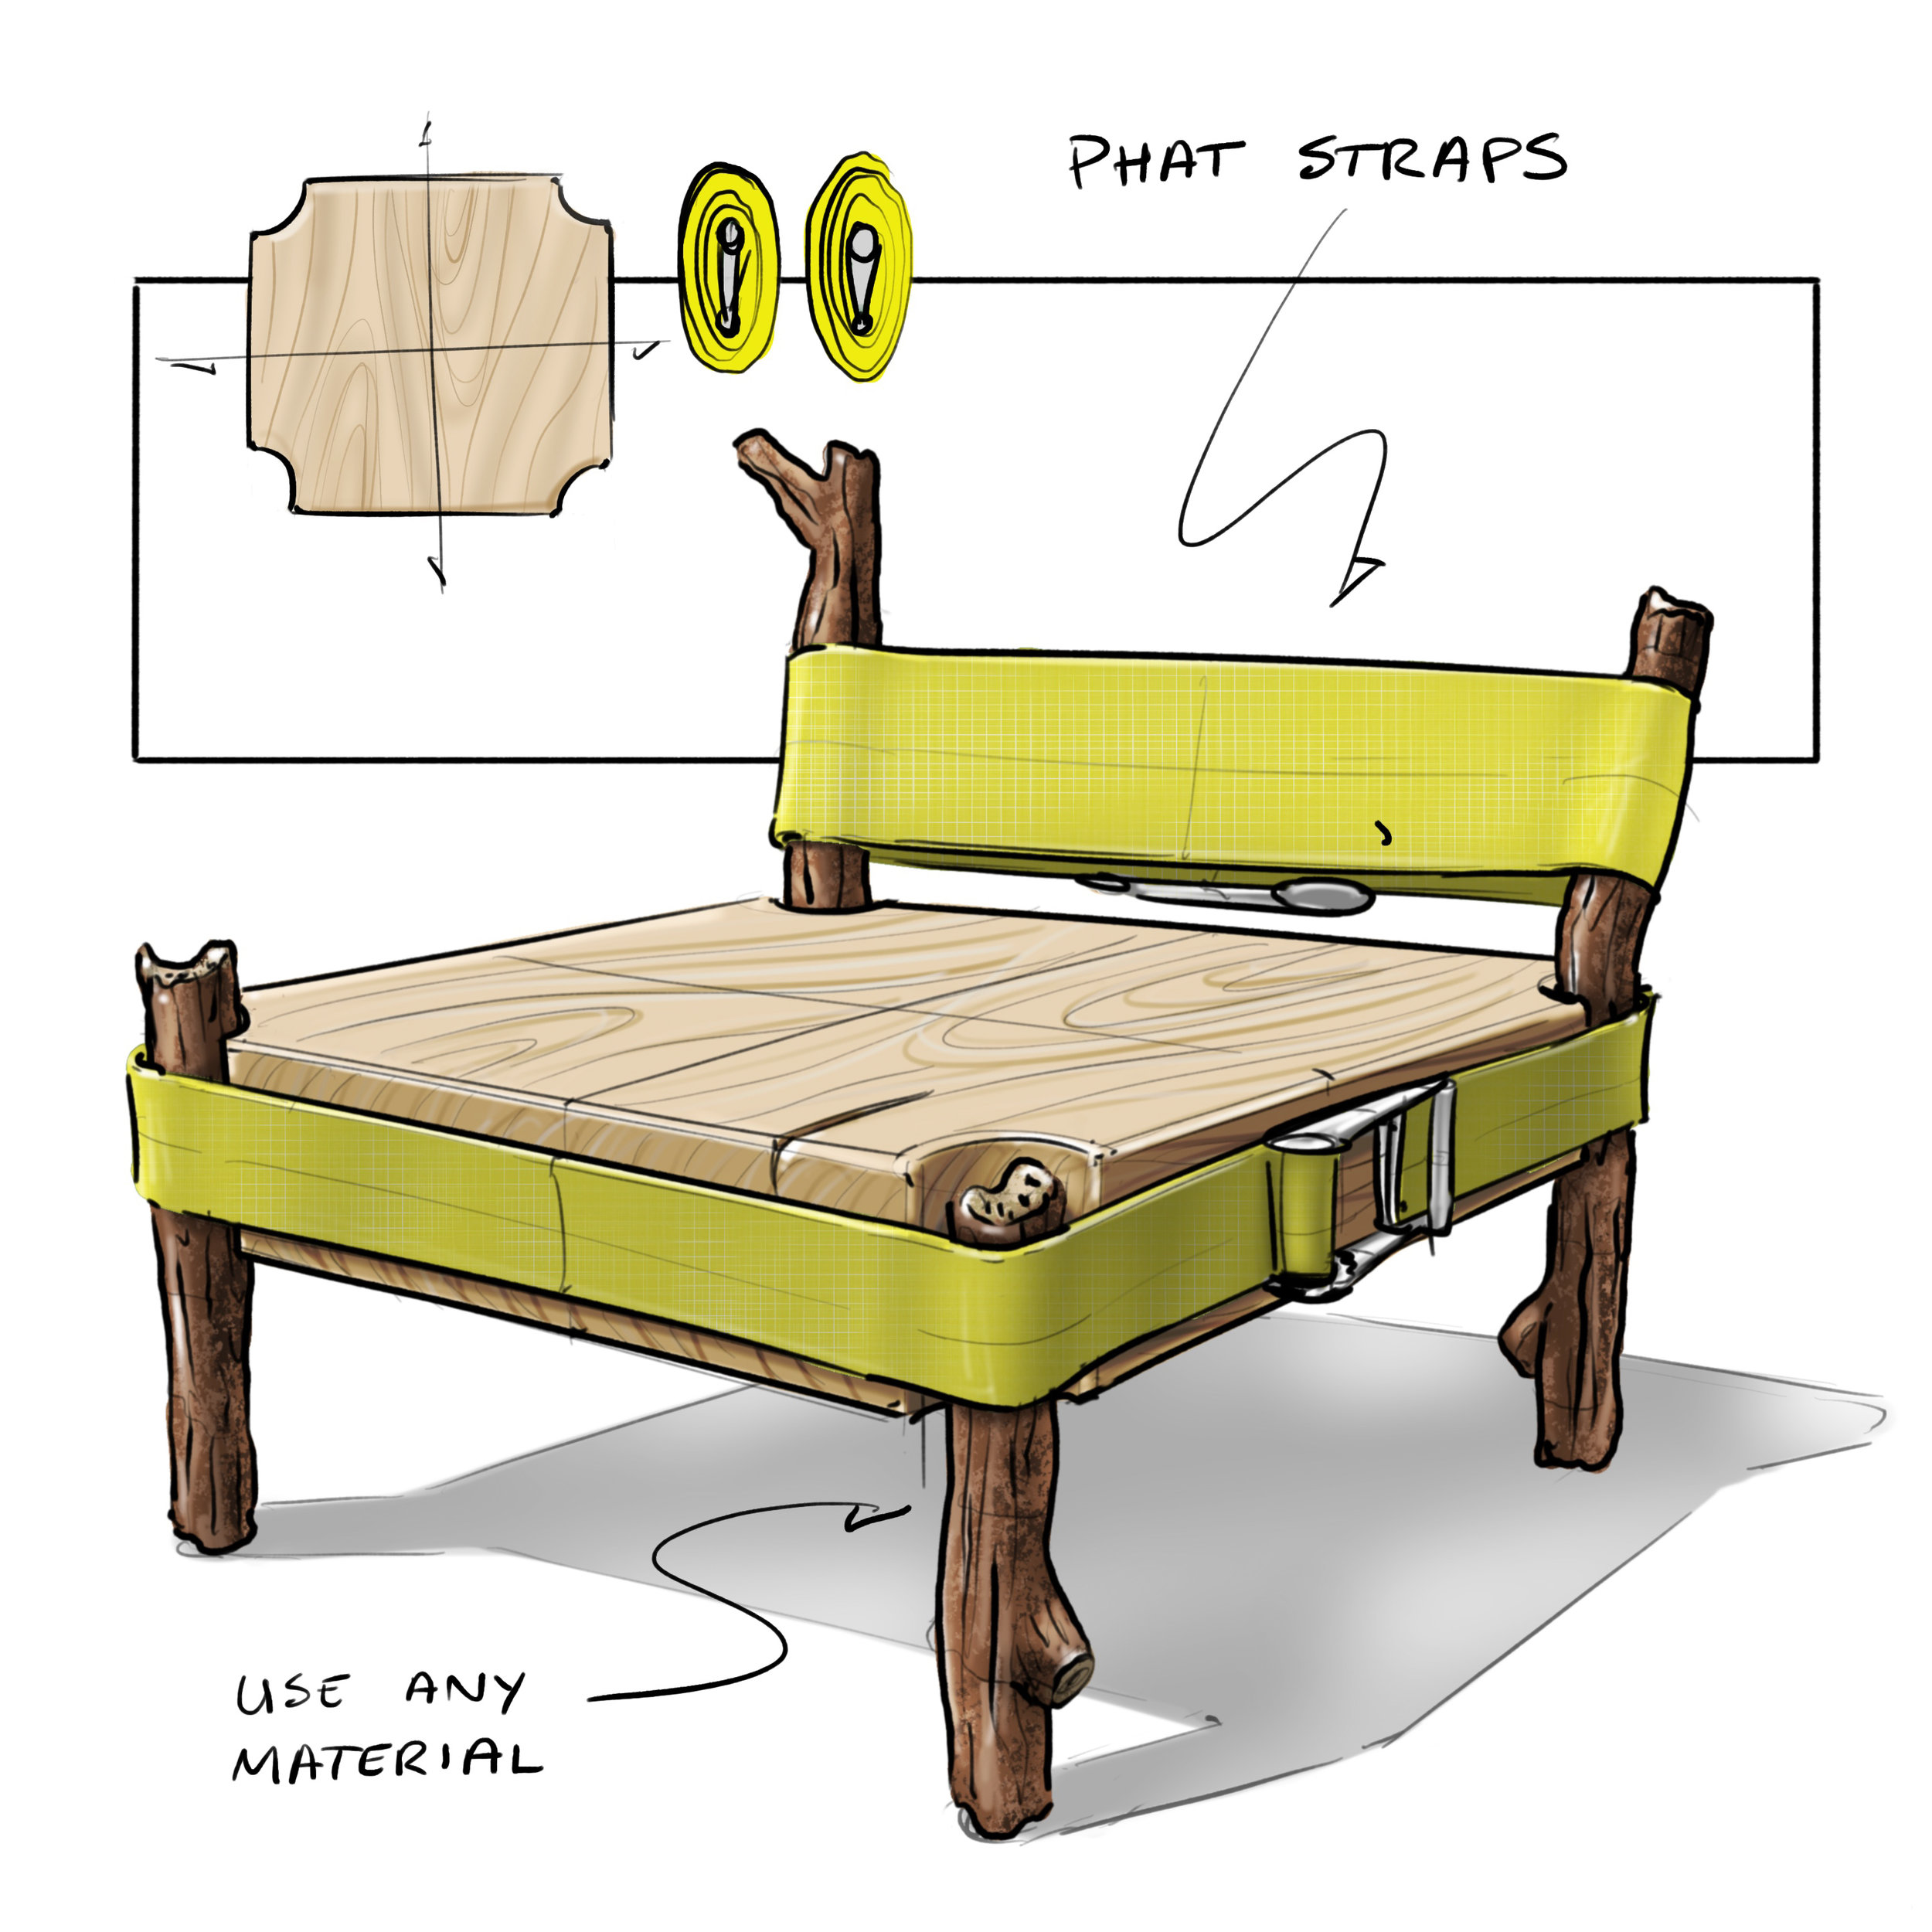 strap-chair-sketch-nicholas-baker